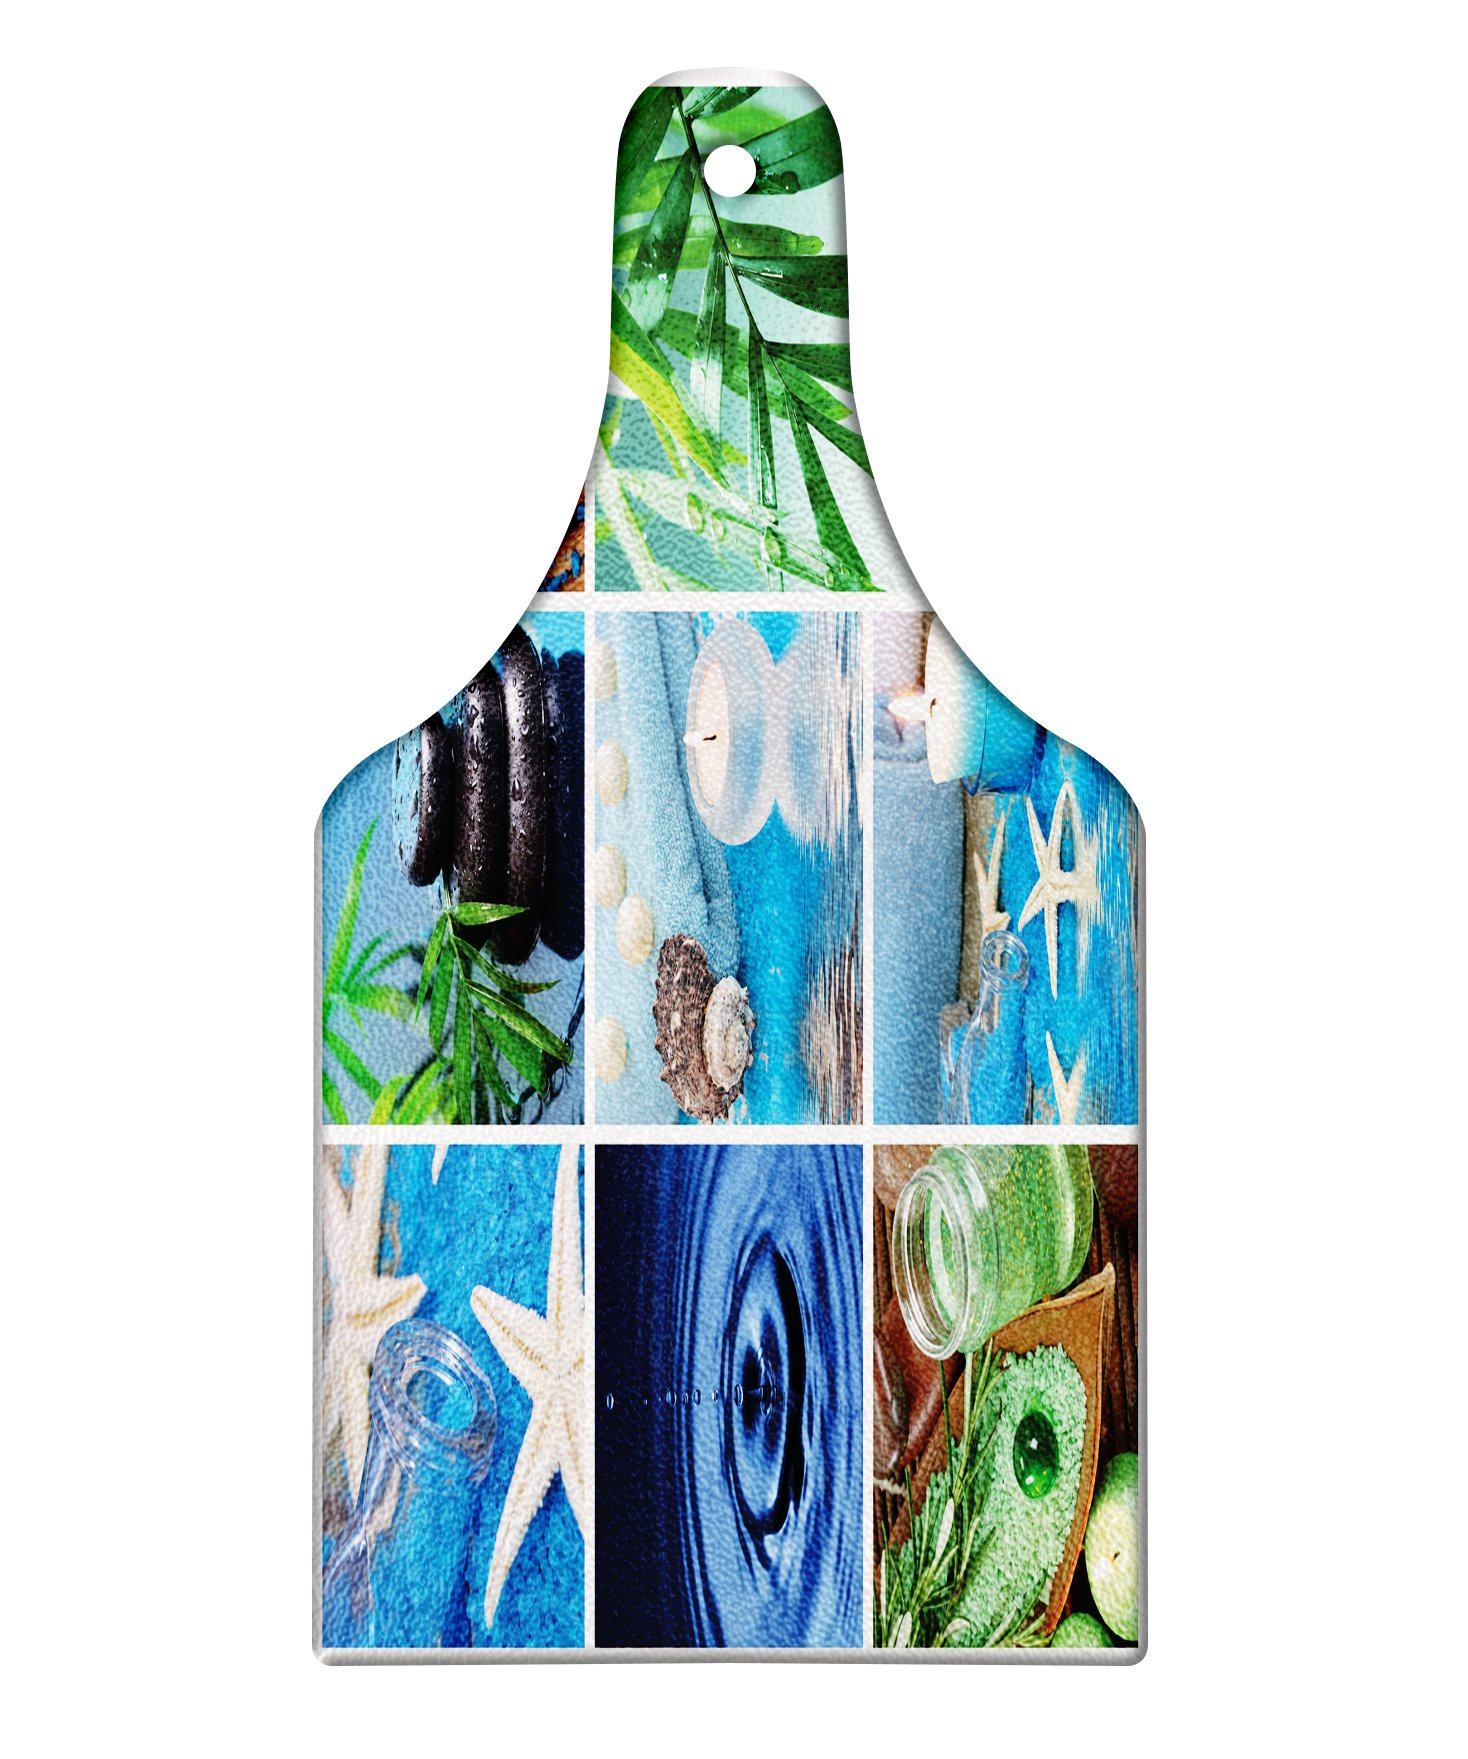 Lunarable Spa Cutting Board, Ocean Themed Collage with Starfish Stone Botanic Plants Aqua and Candles Image, Decorative Tempered Glass Cutting and Serving Board, Wine Bottle Shape, Blue and Green